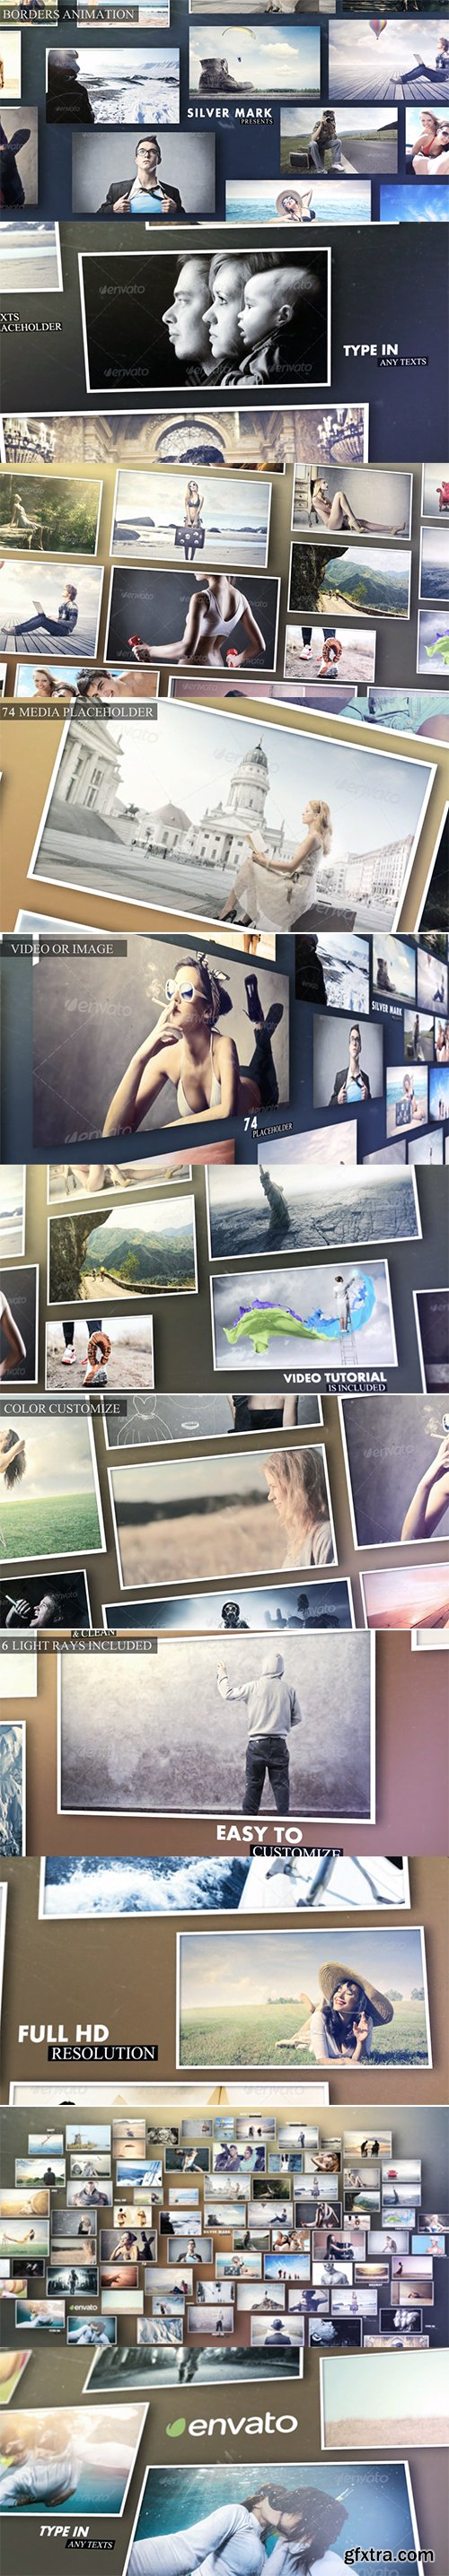 Videohive - 3D Photos Slideshow - V.2 - 7442683